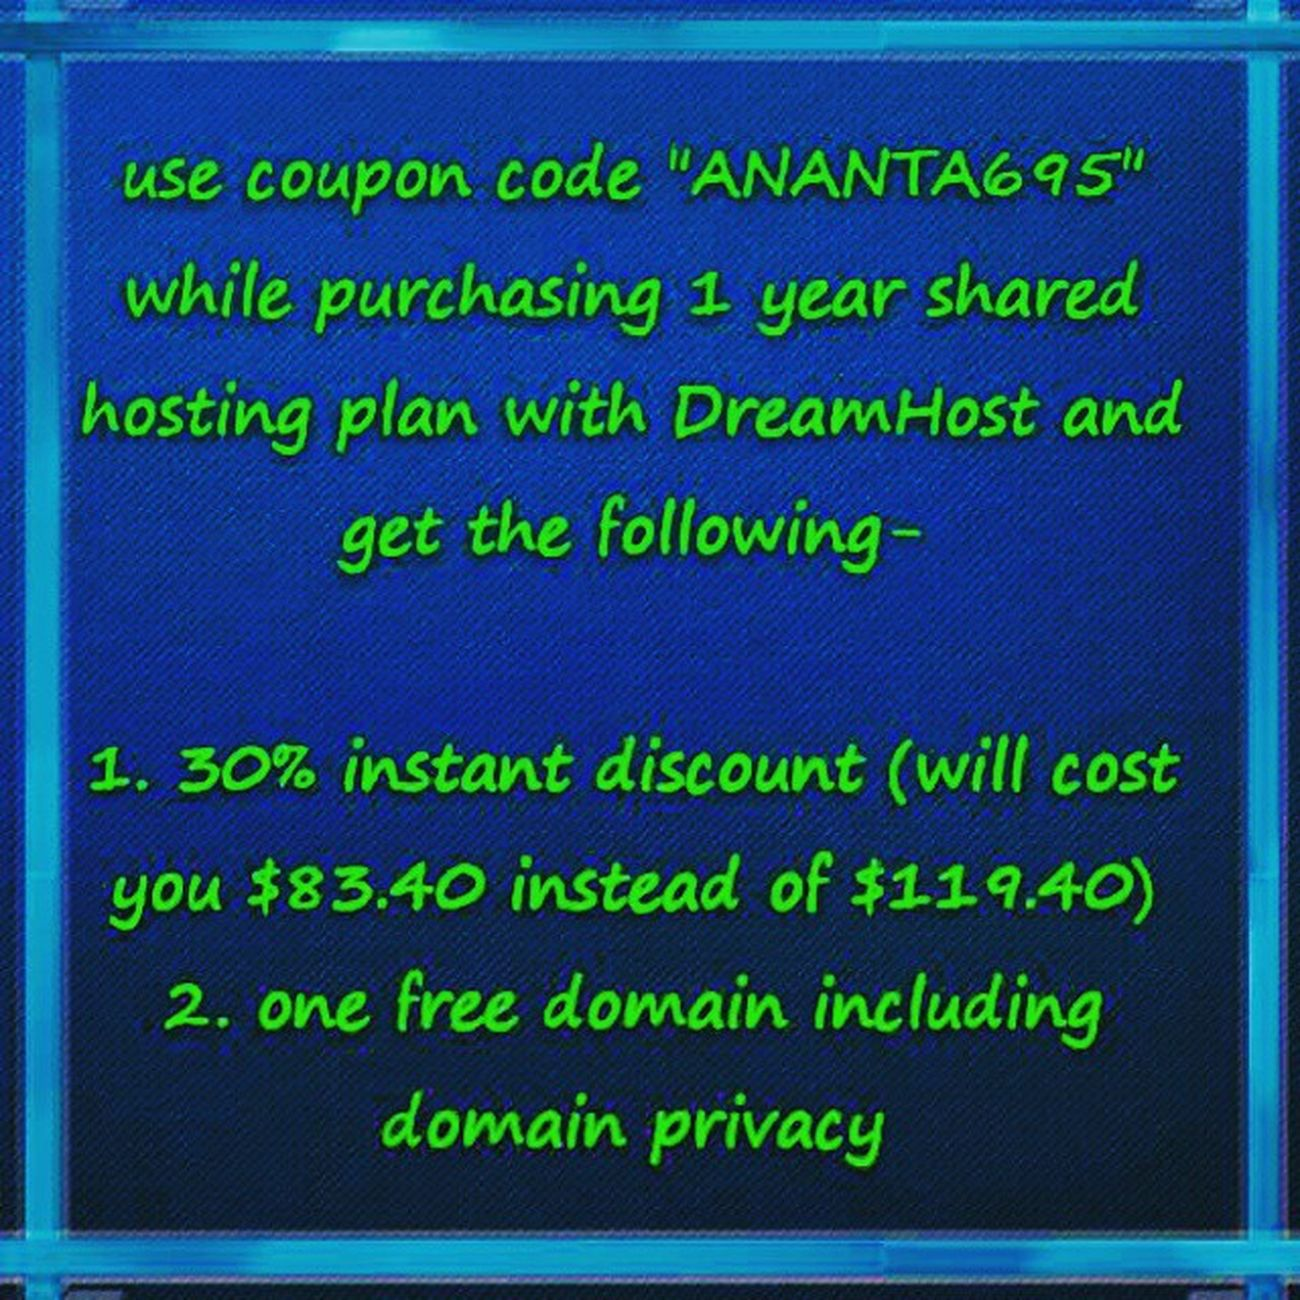 """ANANTA695"" is the latest coupon code which will give you instant 30% discount on 1 Year Shared Hosting with DreamHost and one free domain including domain privacy. Hosting Dreamhost Webhosting Hostingcoupon Discountcoupon Bloghosting Wordpress Wordpresshosting Dreamhostcoupon 1yearhosting Wordpressblogger Wordpressblog Hostings Sharedhosting Discountcoupons Hostingdiscount Freedomain Domain Domainprivacy Limitedtimeoffer Websitebuilder GoDaddy Bigrock Oneyearfreedomain Lootoffer hurryup"